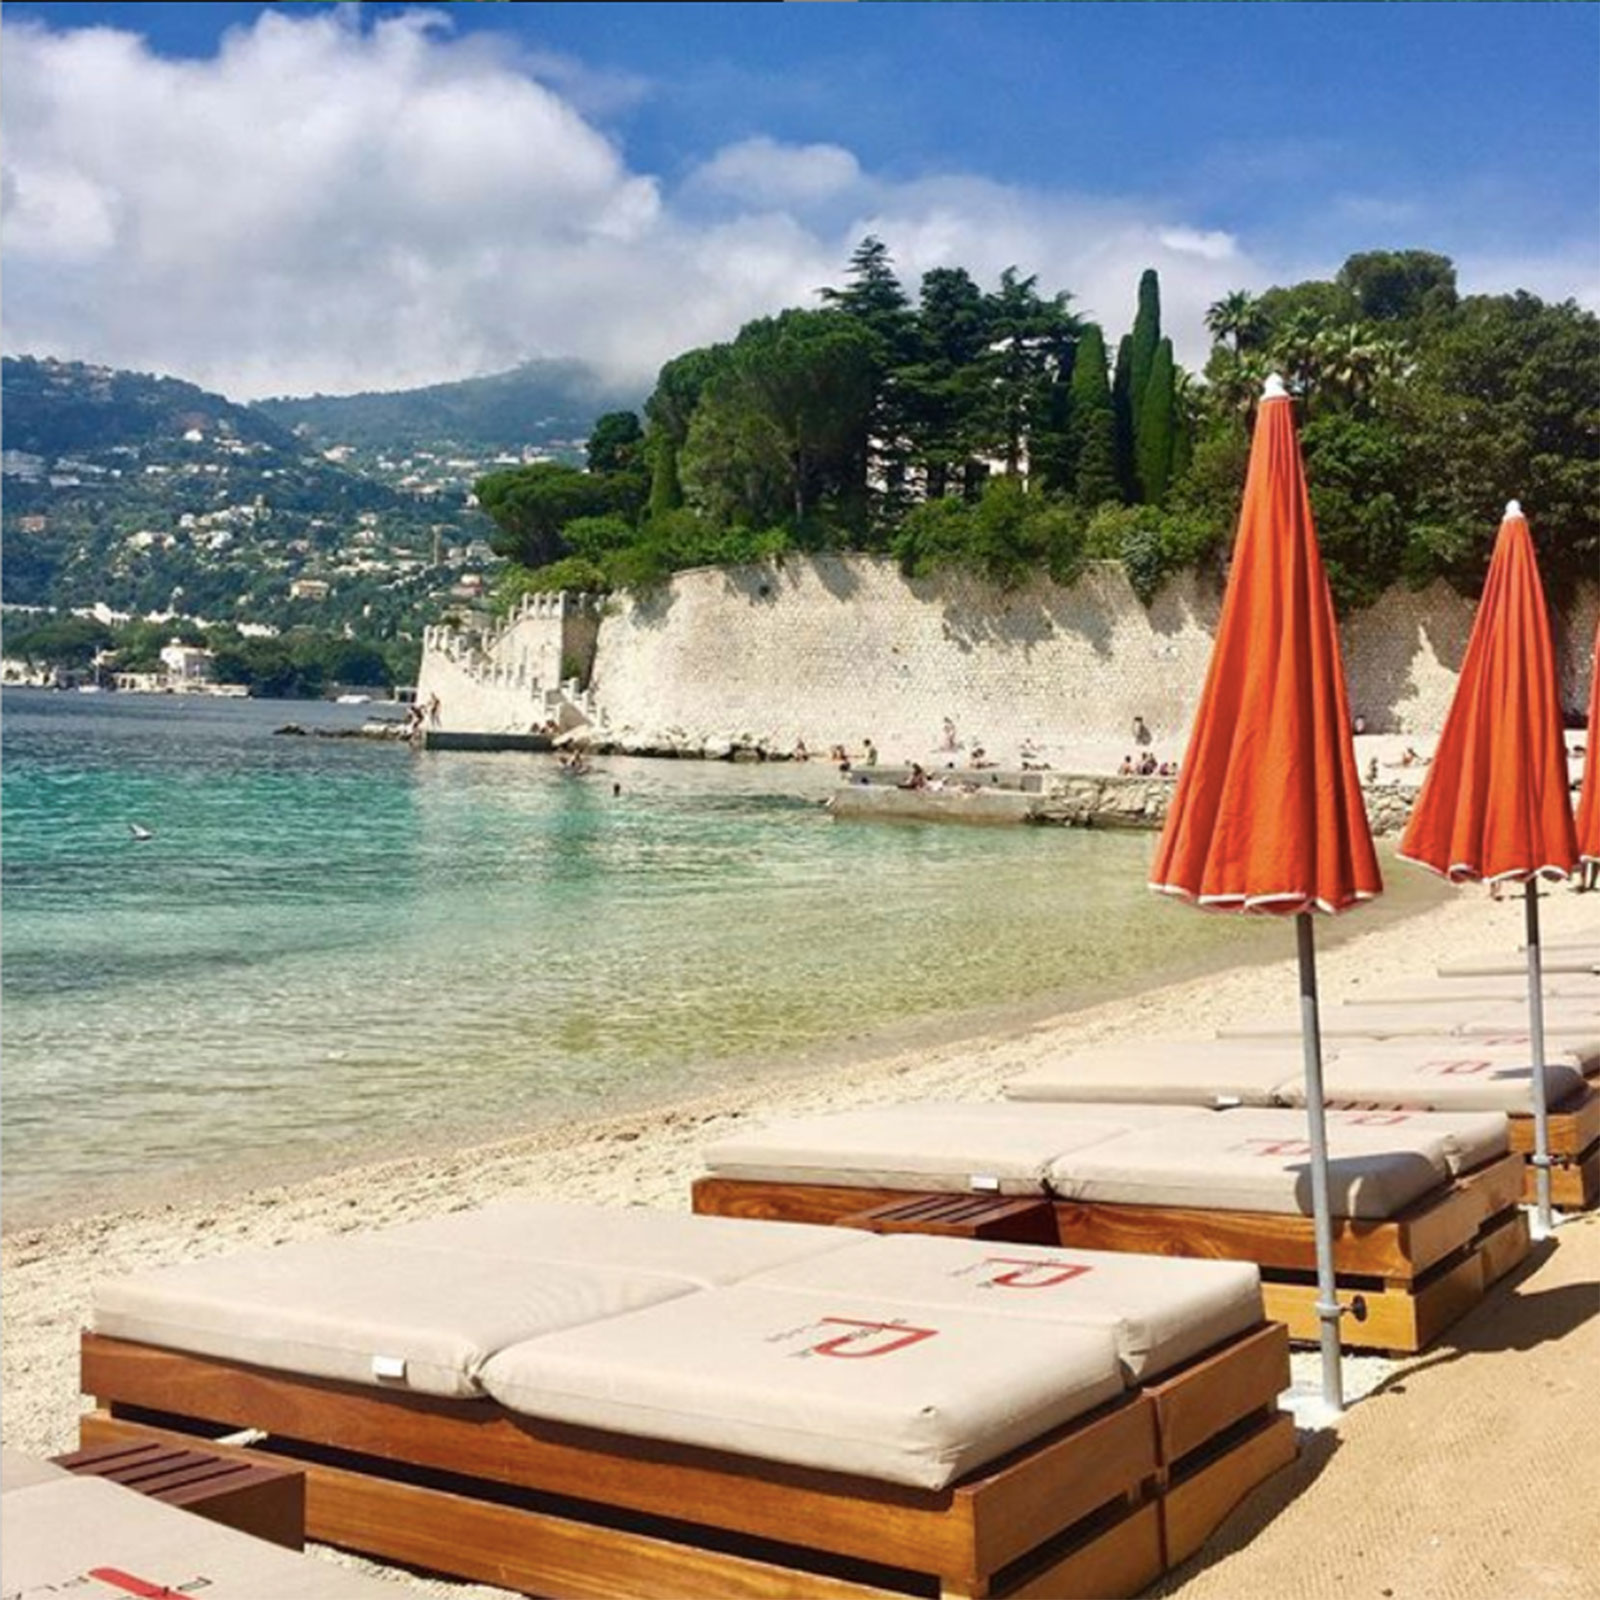 Passable_Beach_9_The_Ink_Collective_Inside_Ink_Pret_A_Partir_Guide_To_Cote_d'Azur_.jpg